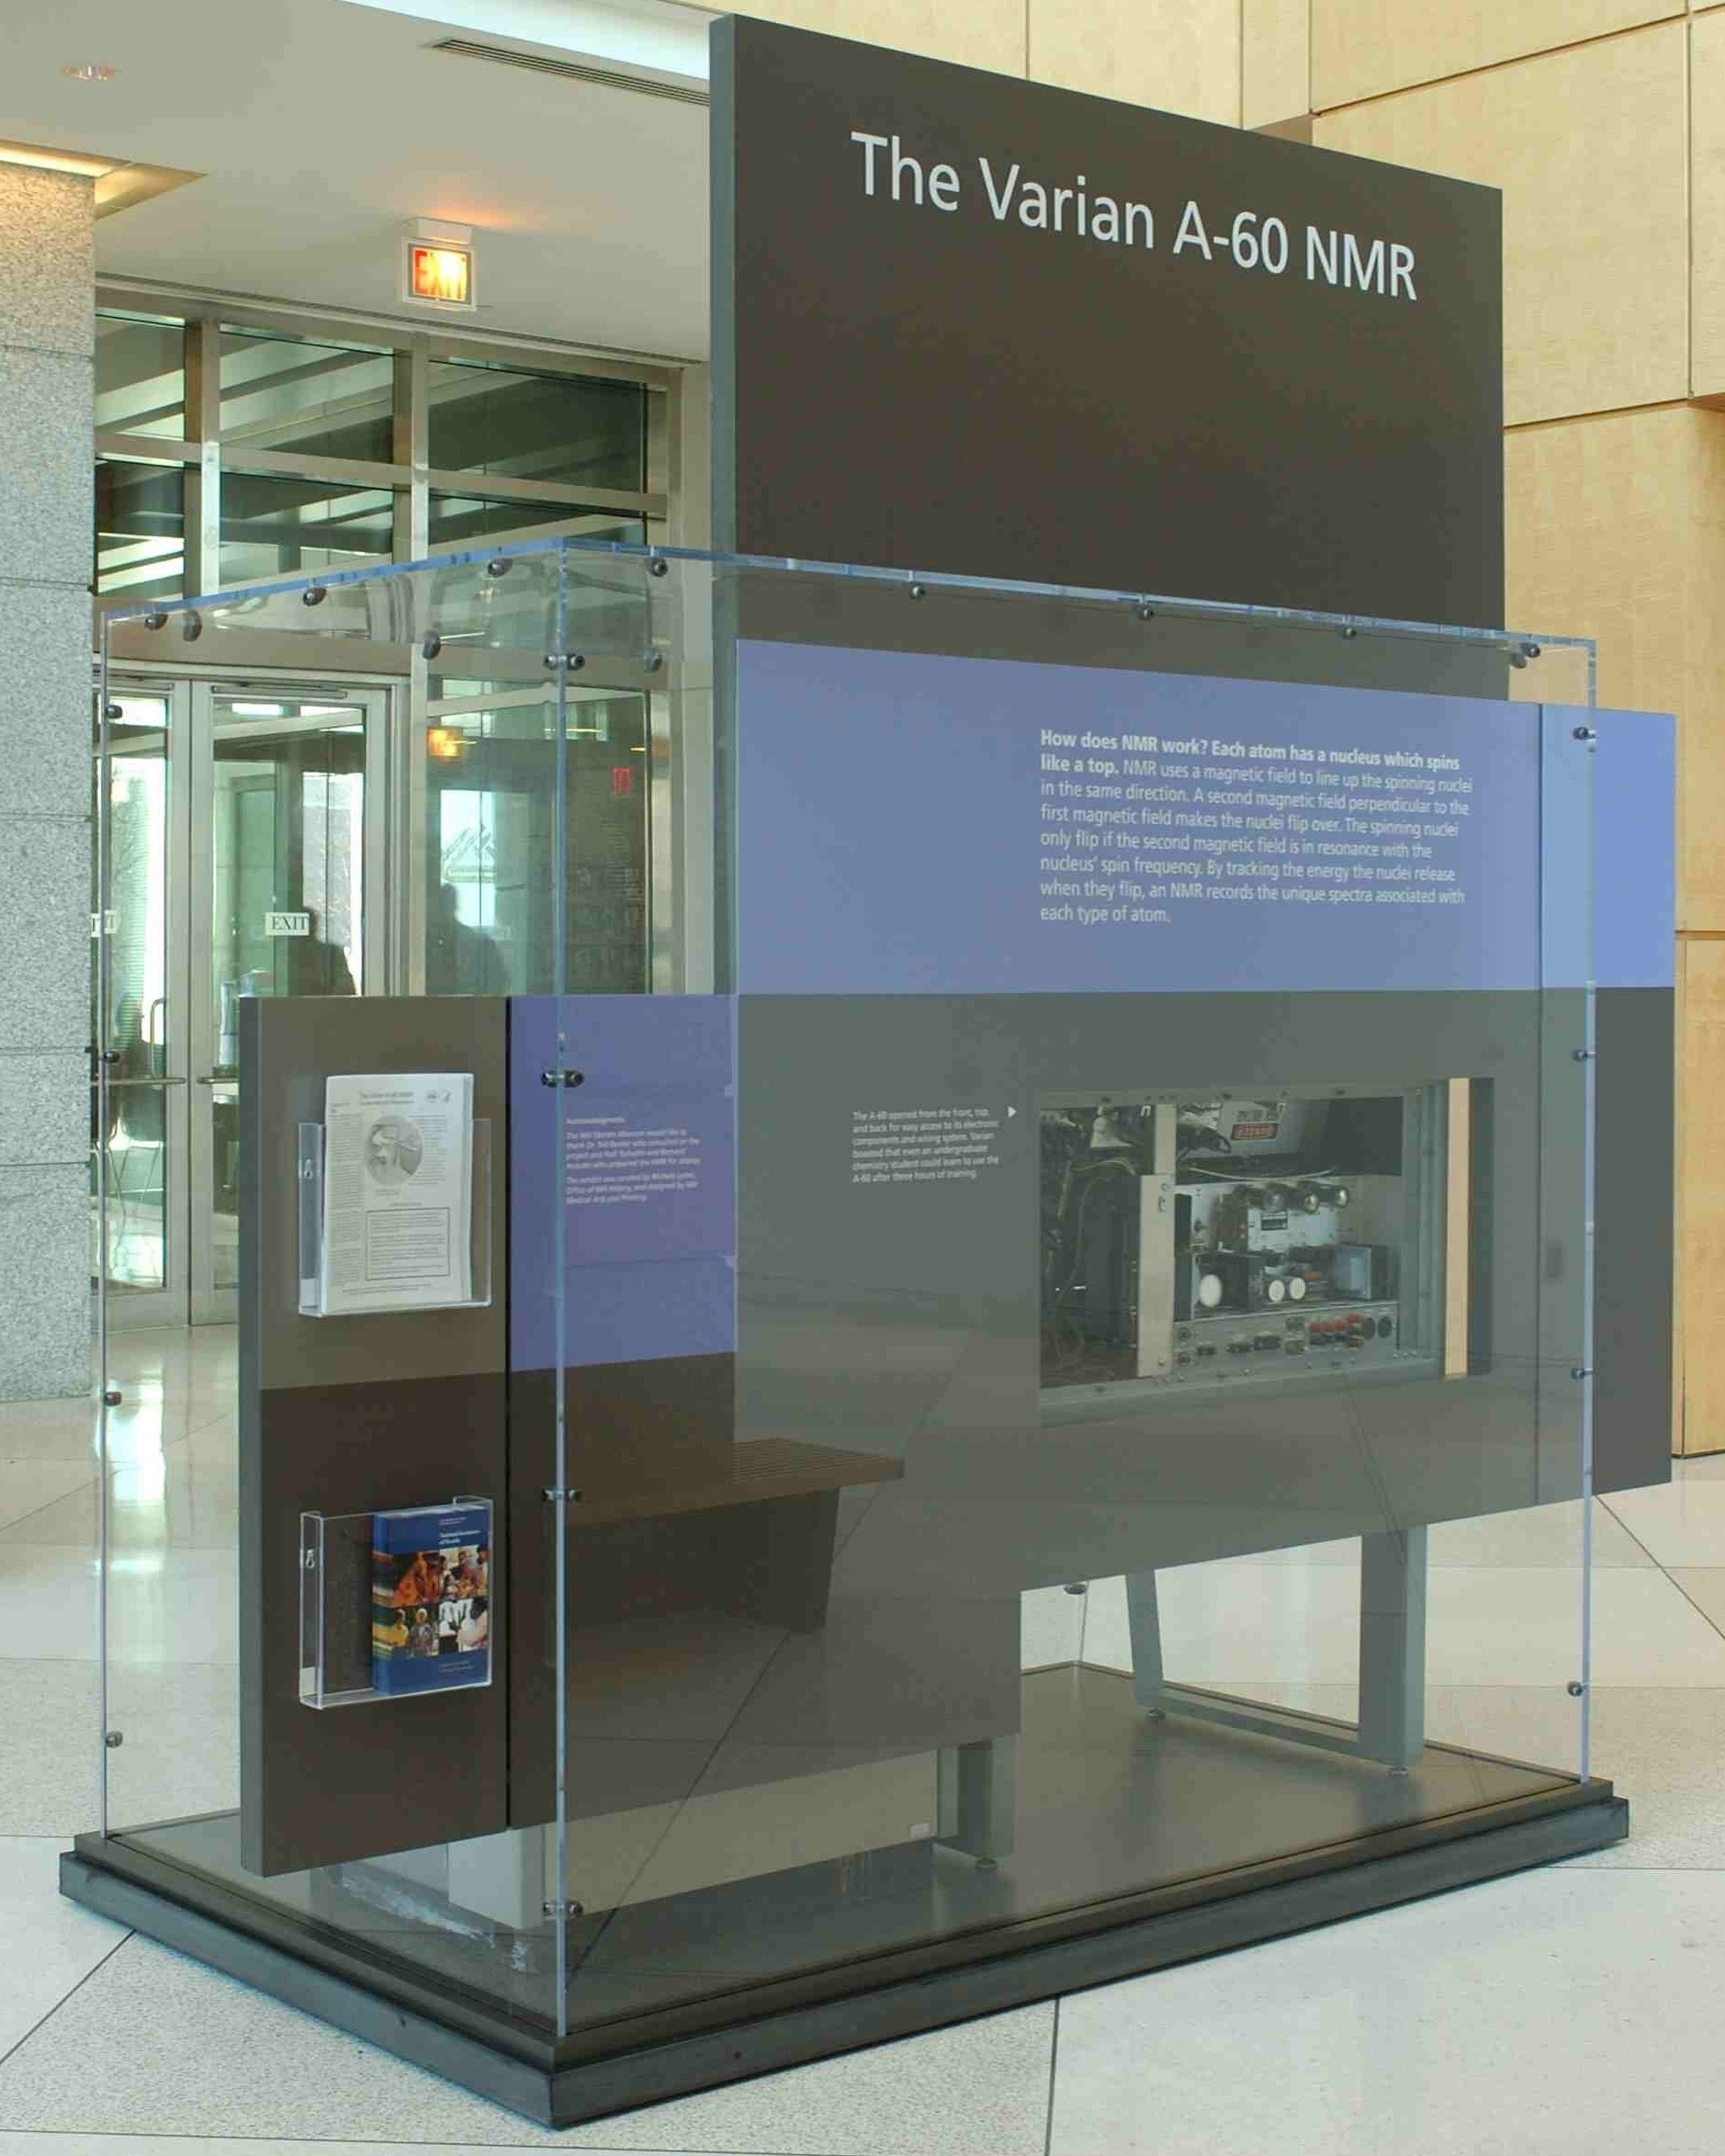 photo of the museum display